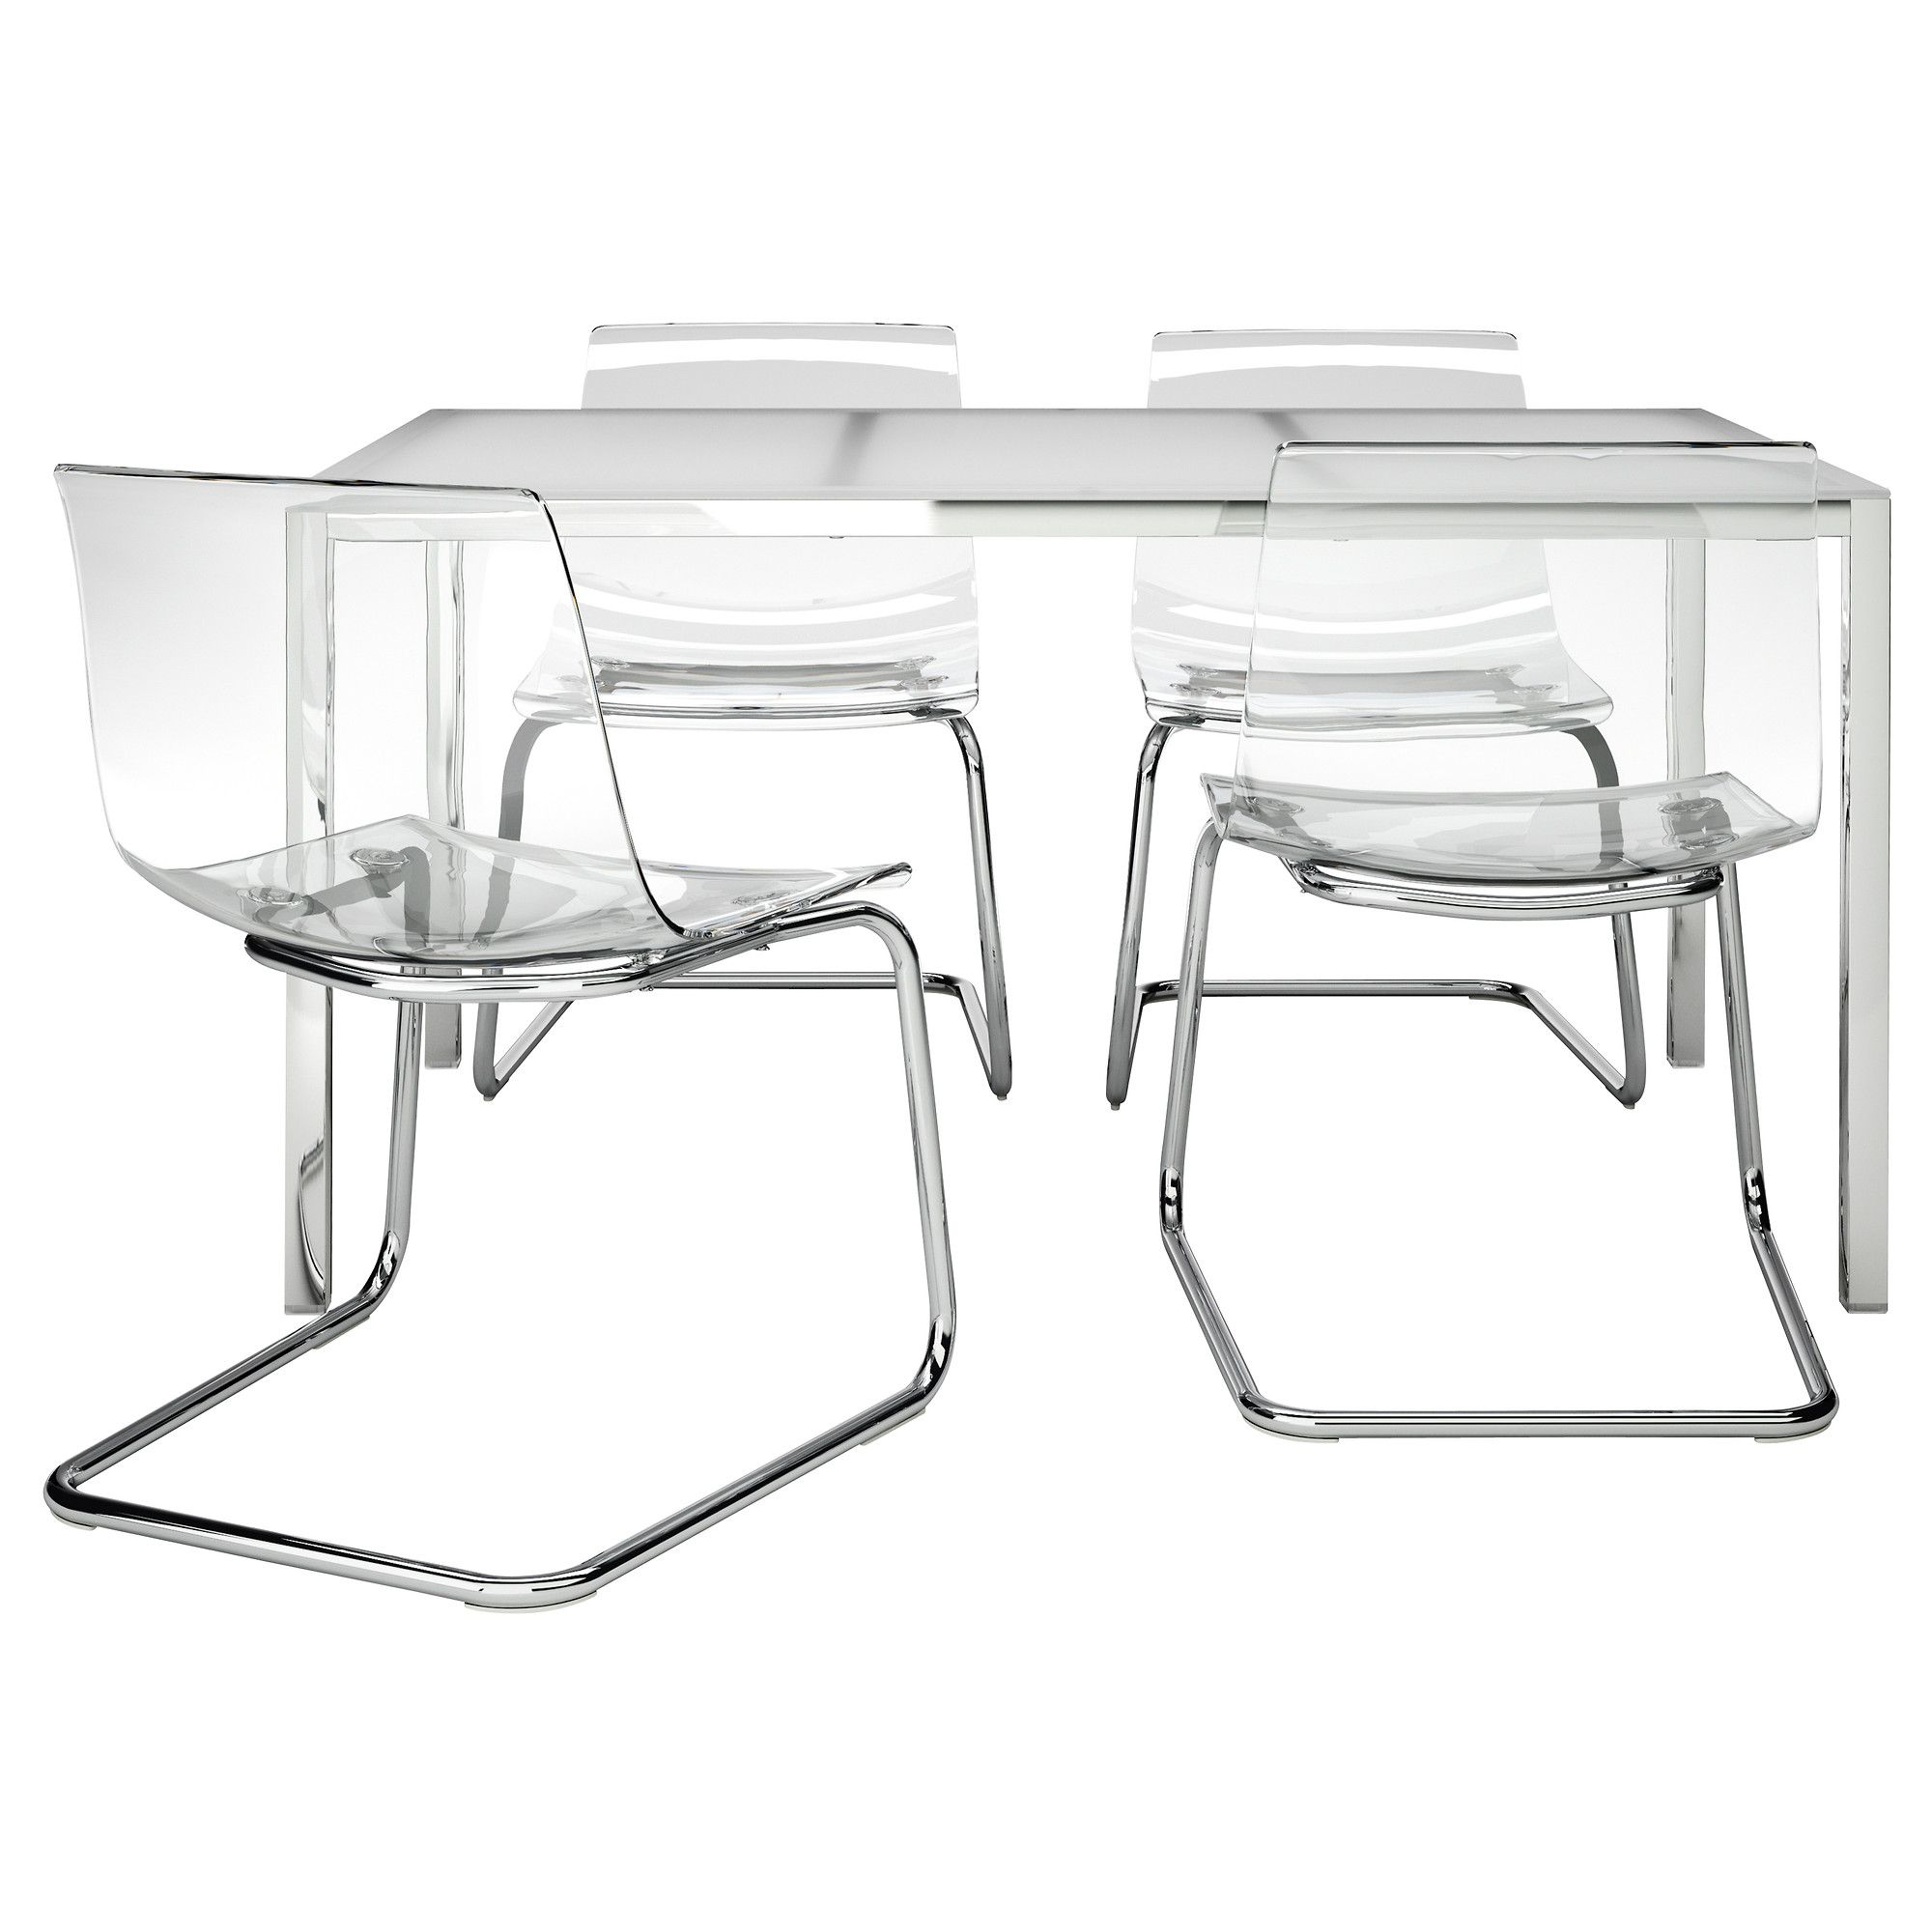 TORSBY TOBIAS Table And 4 Chairs